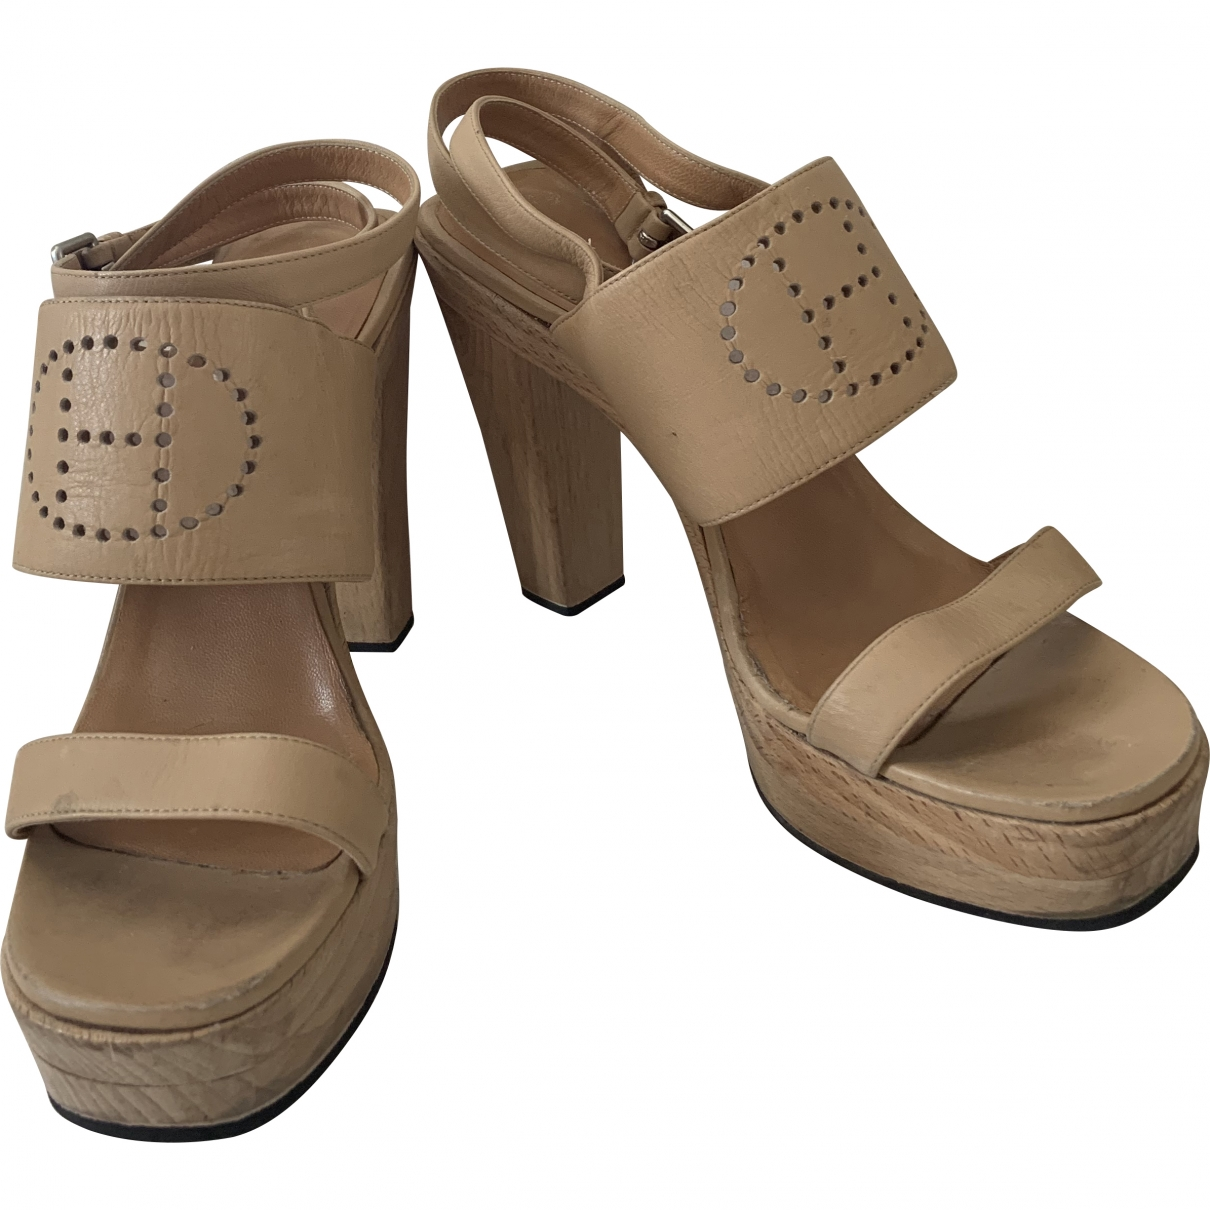 Hermès \N Beige Leather Sandals for Women 37 EU